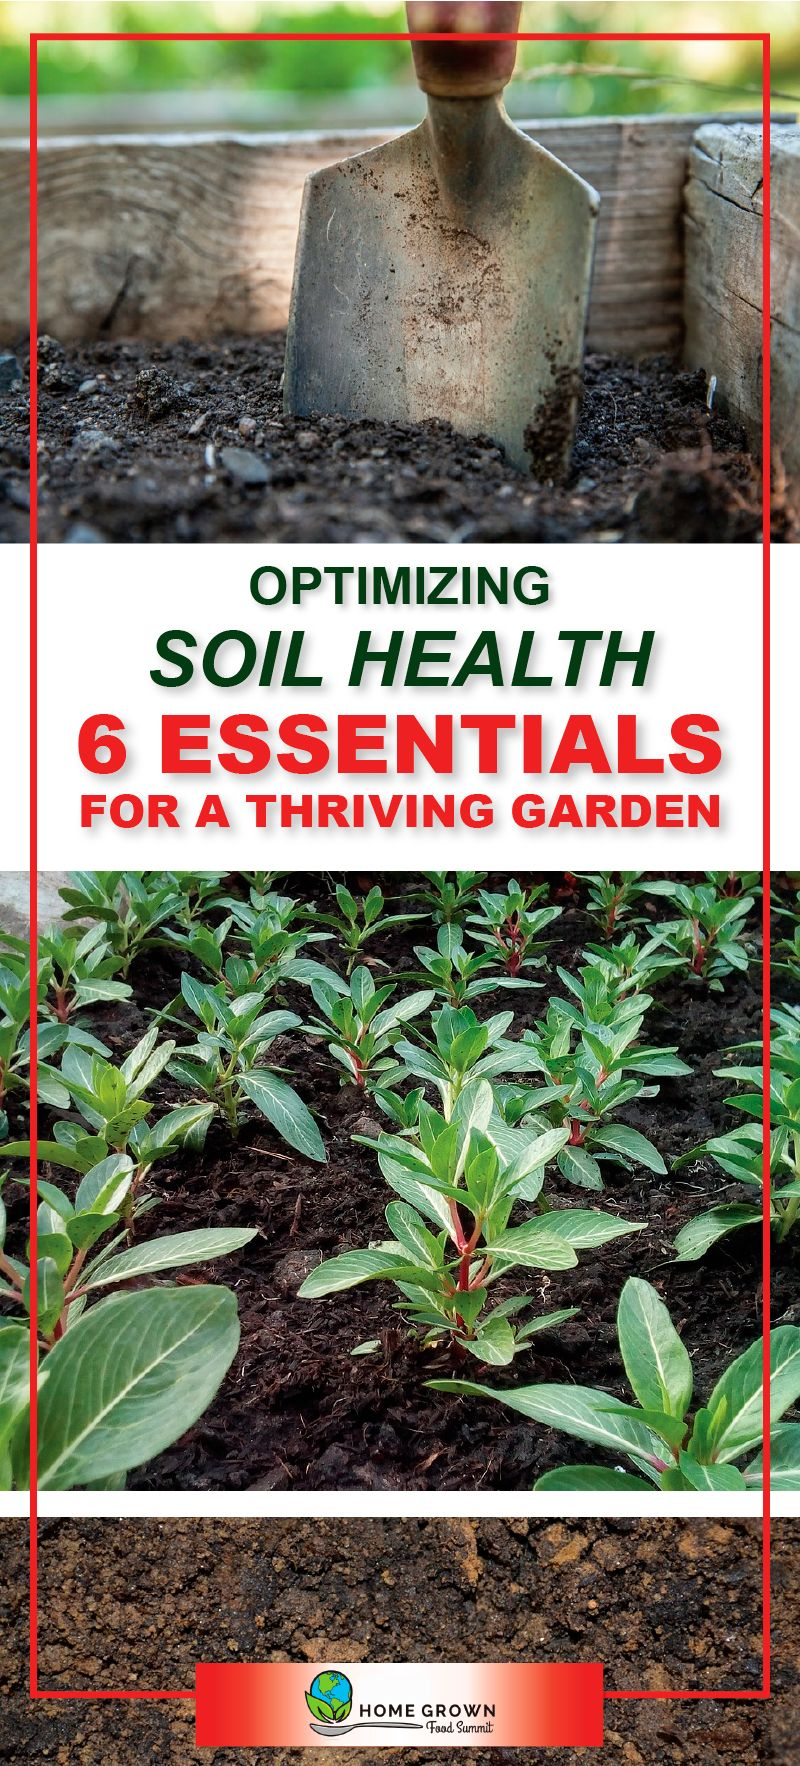 Learn the 6 soil essentials for a thriving garden. Plus, a